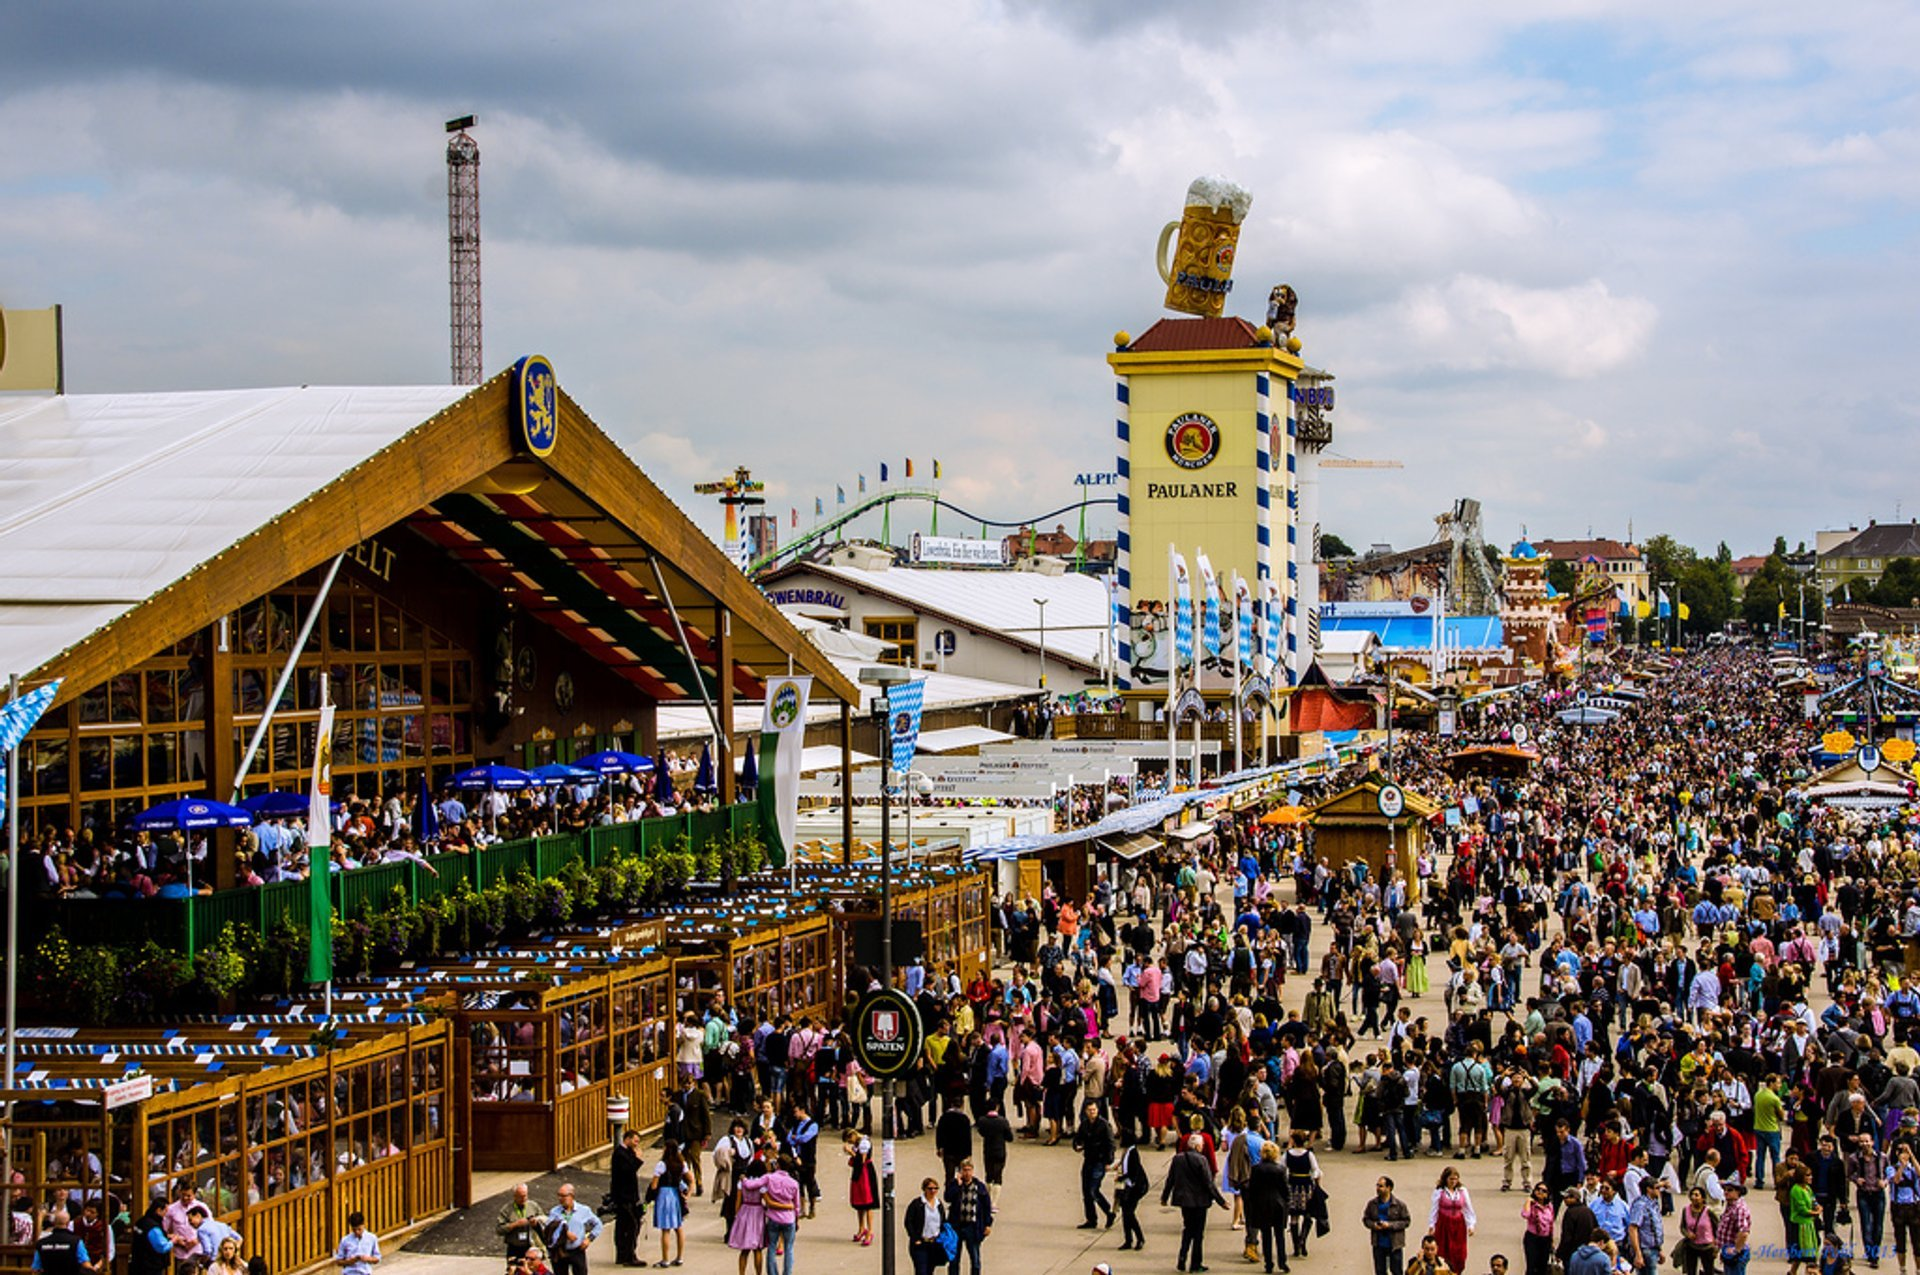 Oktoberfest in Munich 2019 - Best Time